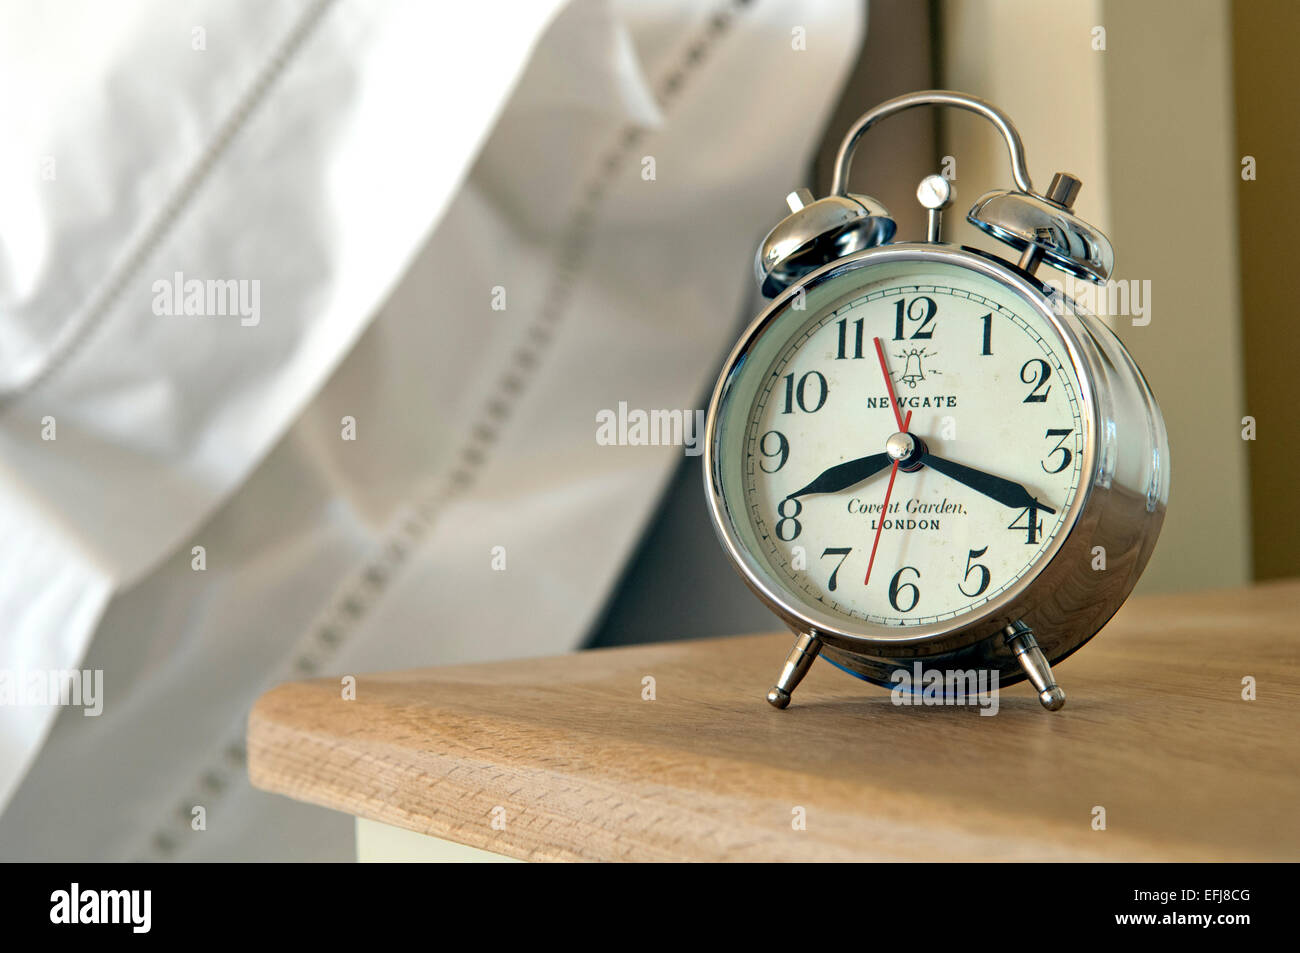 Bedroom alarm clock Stock Photo: 78463072 - Alamy